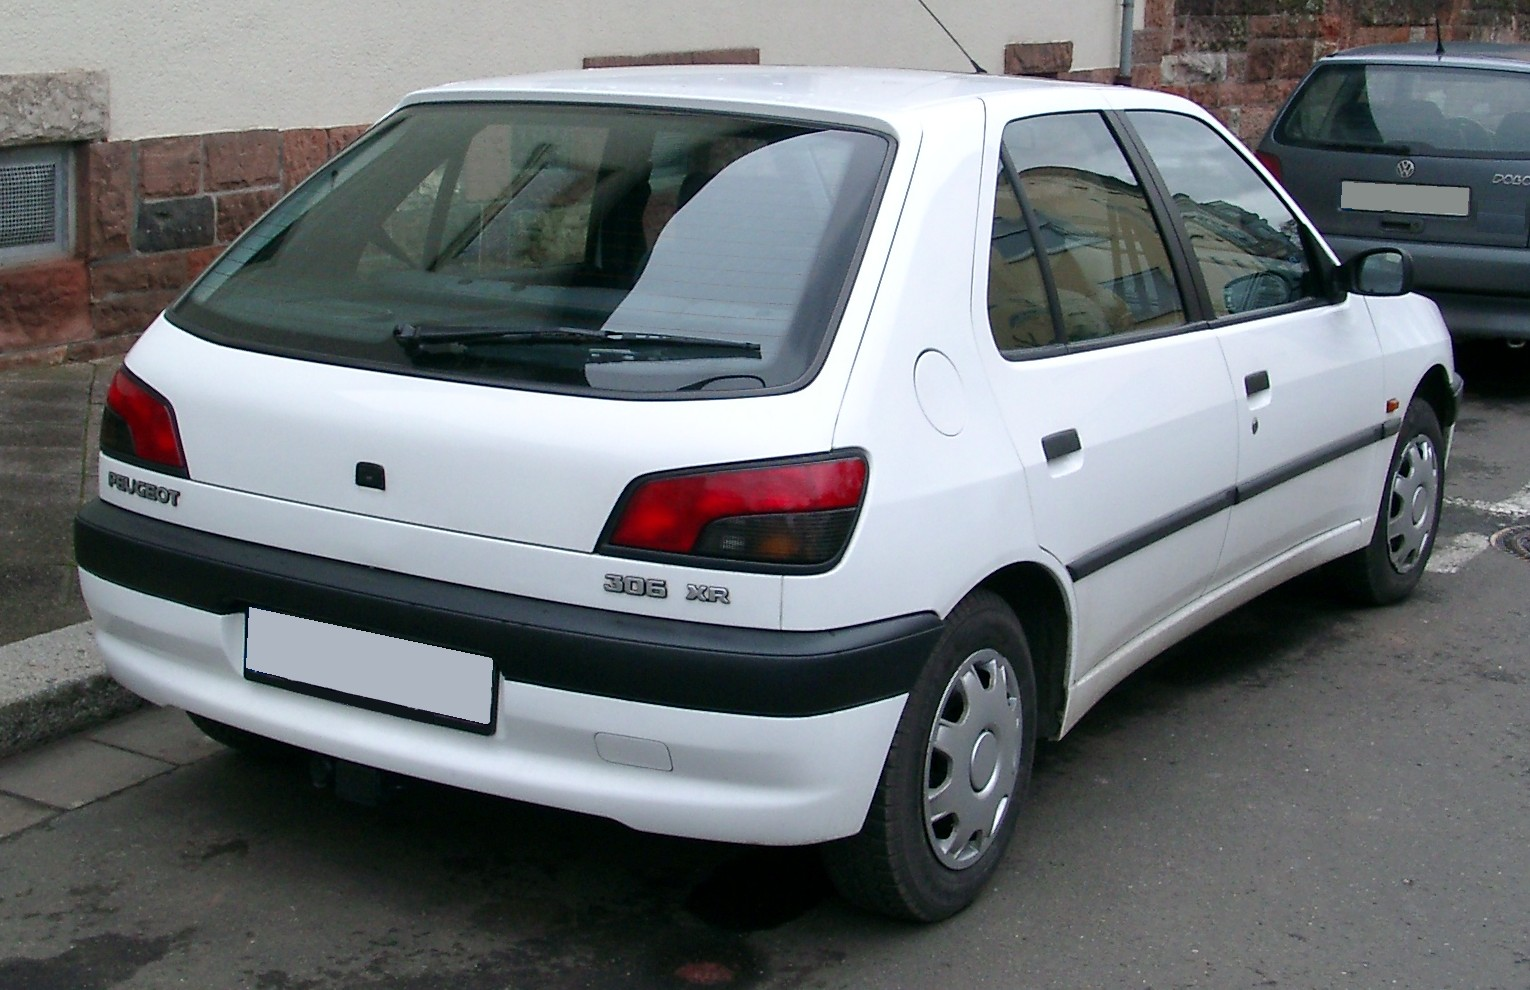 Peugeot 306 1993 - 2002 Hatchback 3 door #3